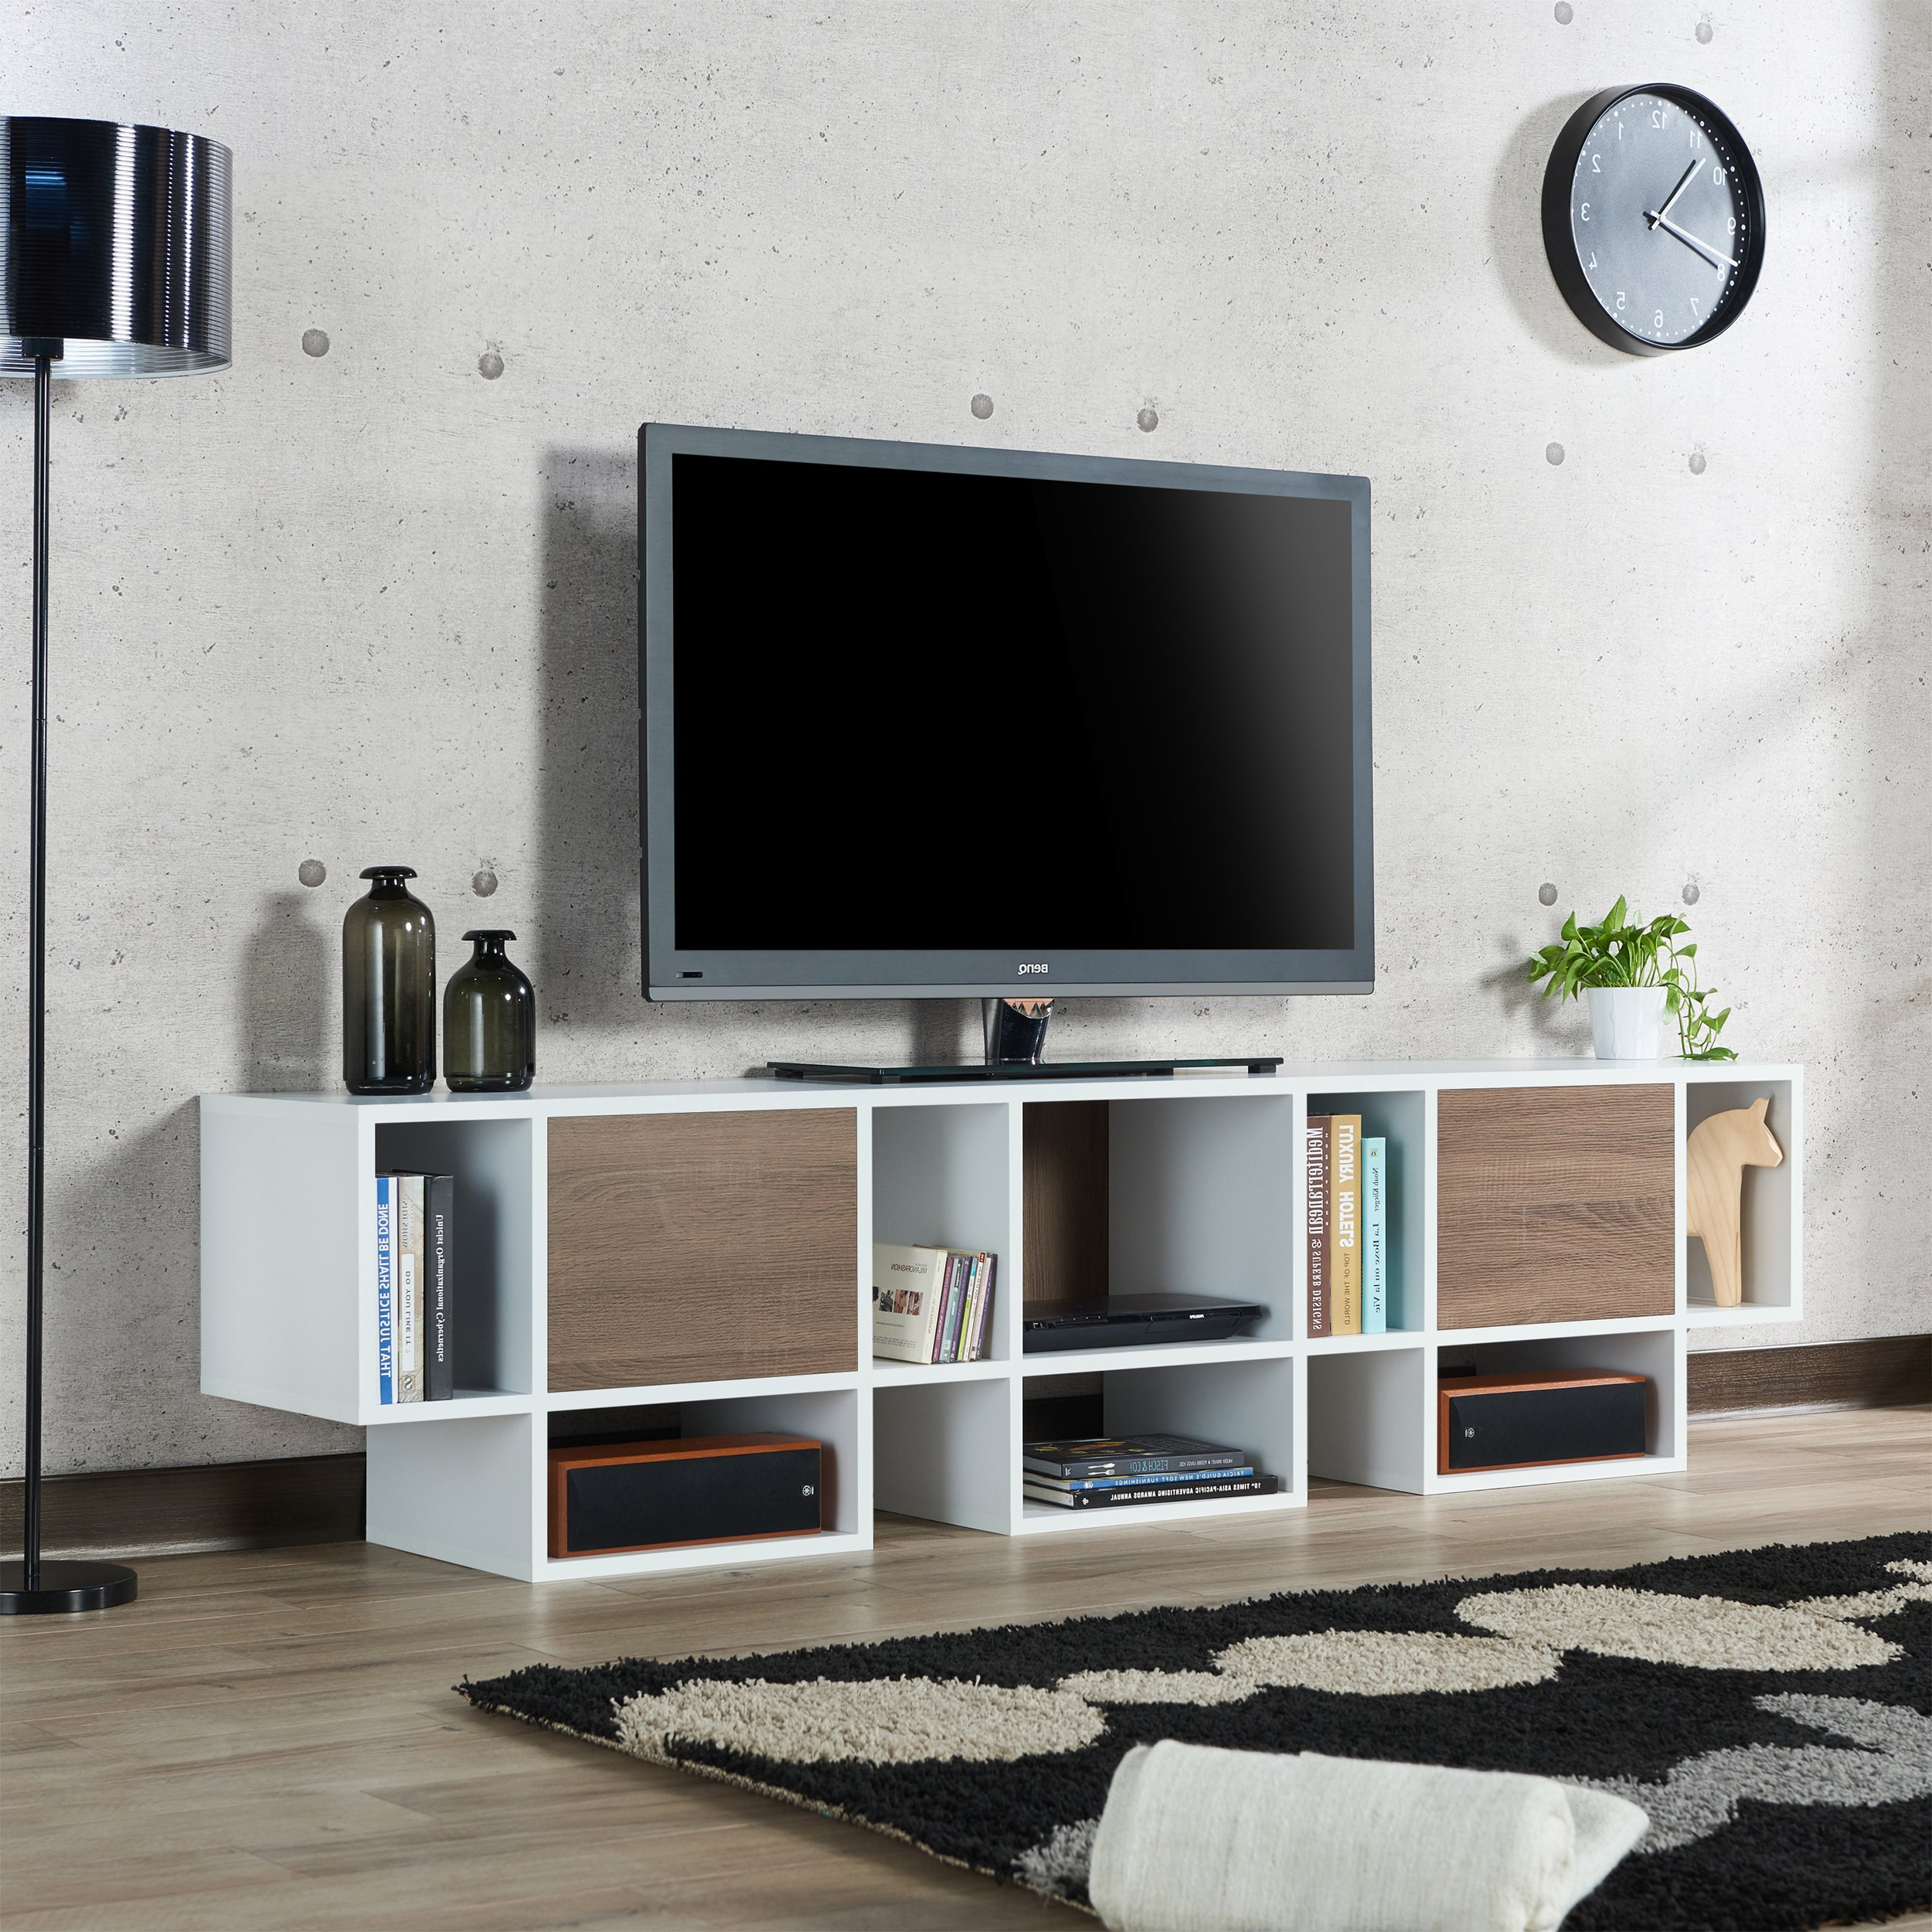 Shop Furniture Of America Veruca Contemporary Two Tone White Throughout Most Recent Noah Rustic White 66 Inch Tv Stands (Gallery 5 of 20)